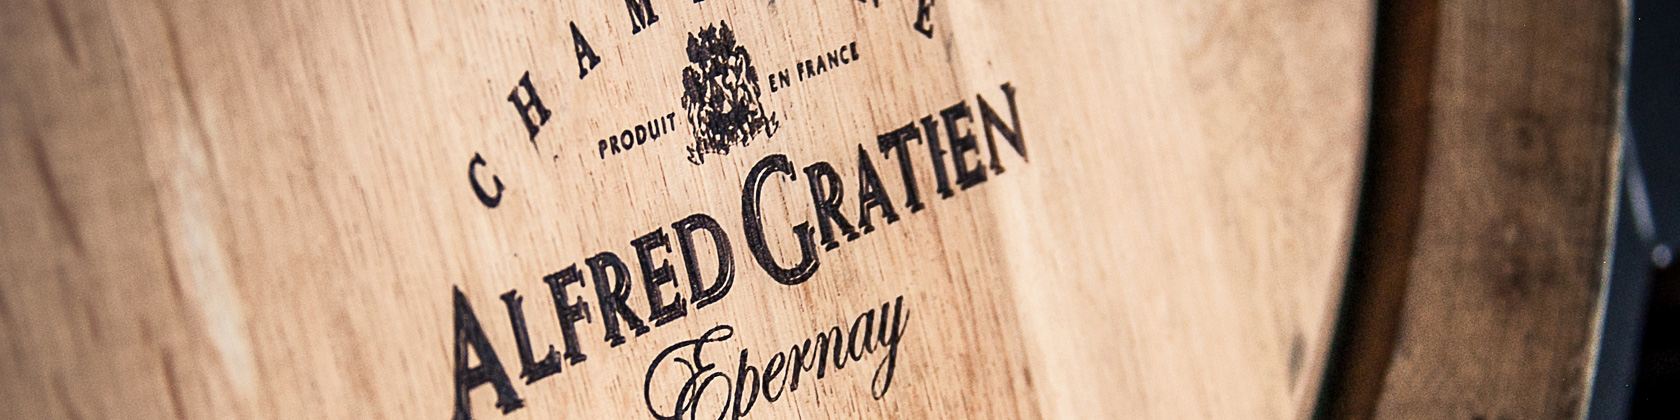 Champagne ALFRED GRATIEN Fass